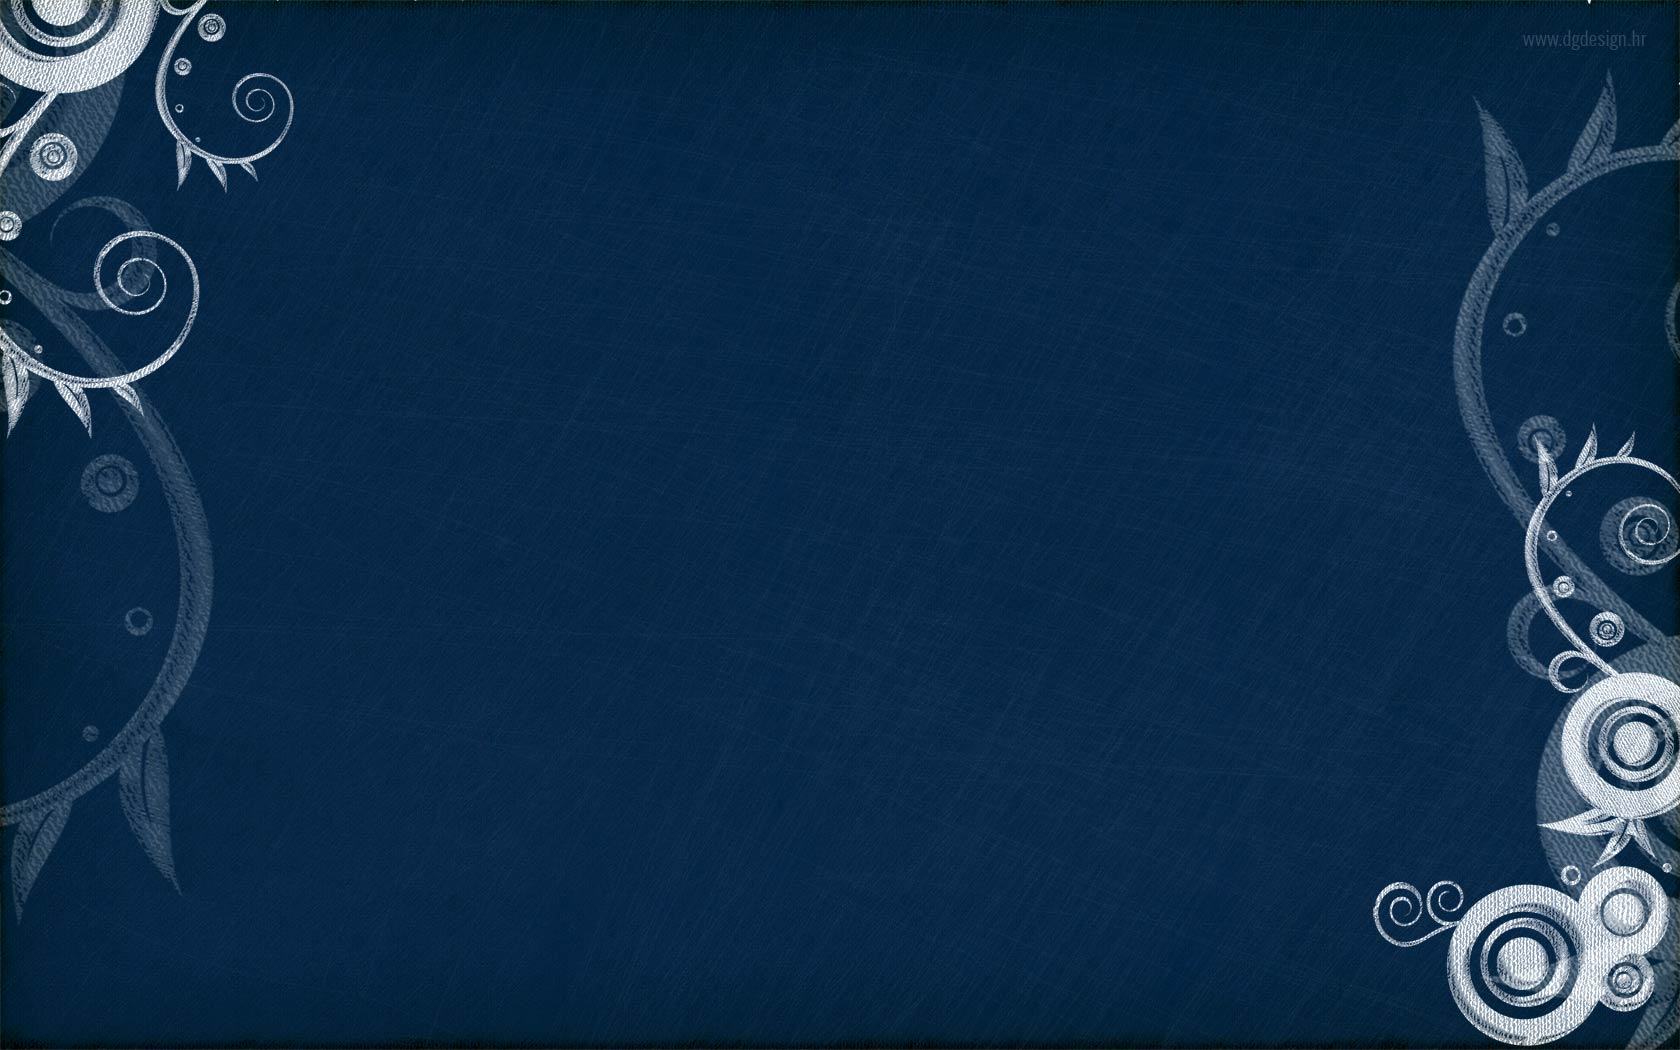 blue_wallpaper_awesome_134_background